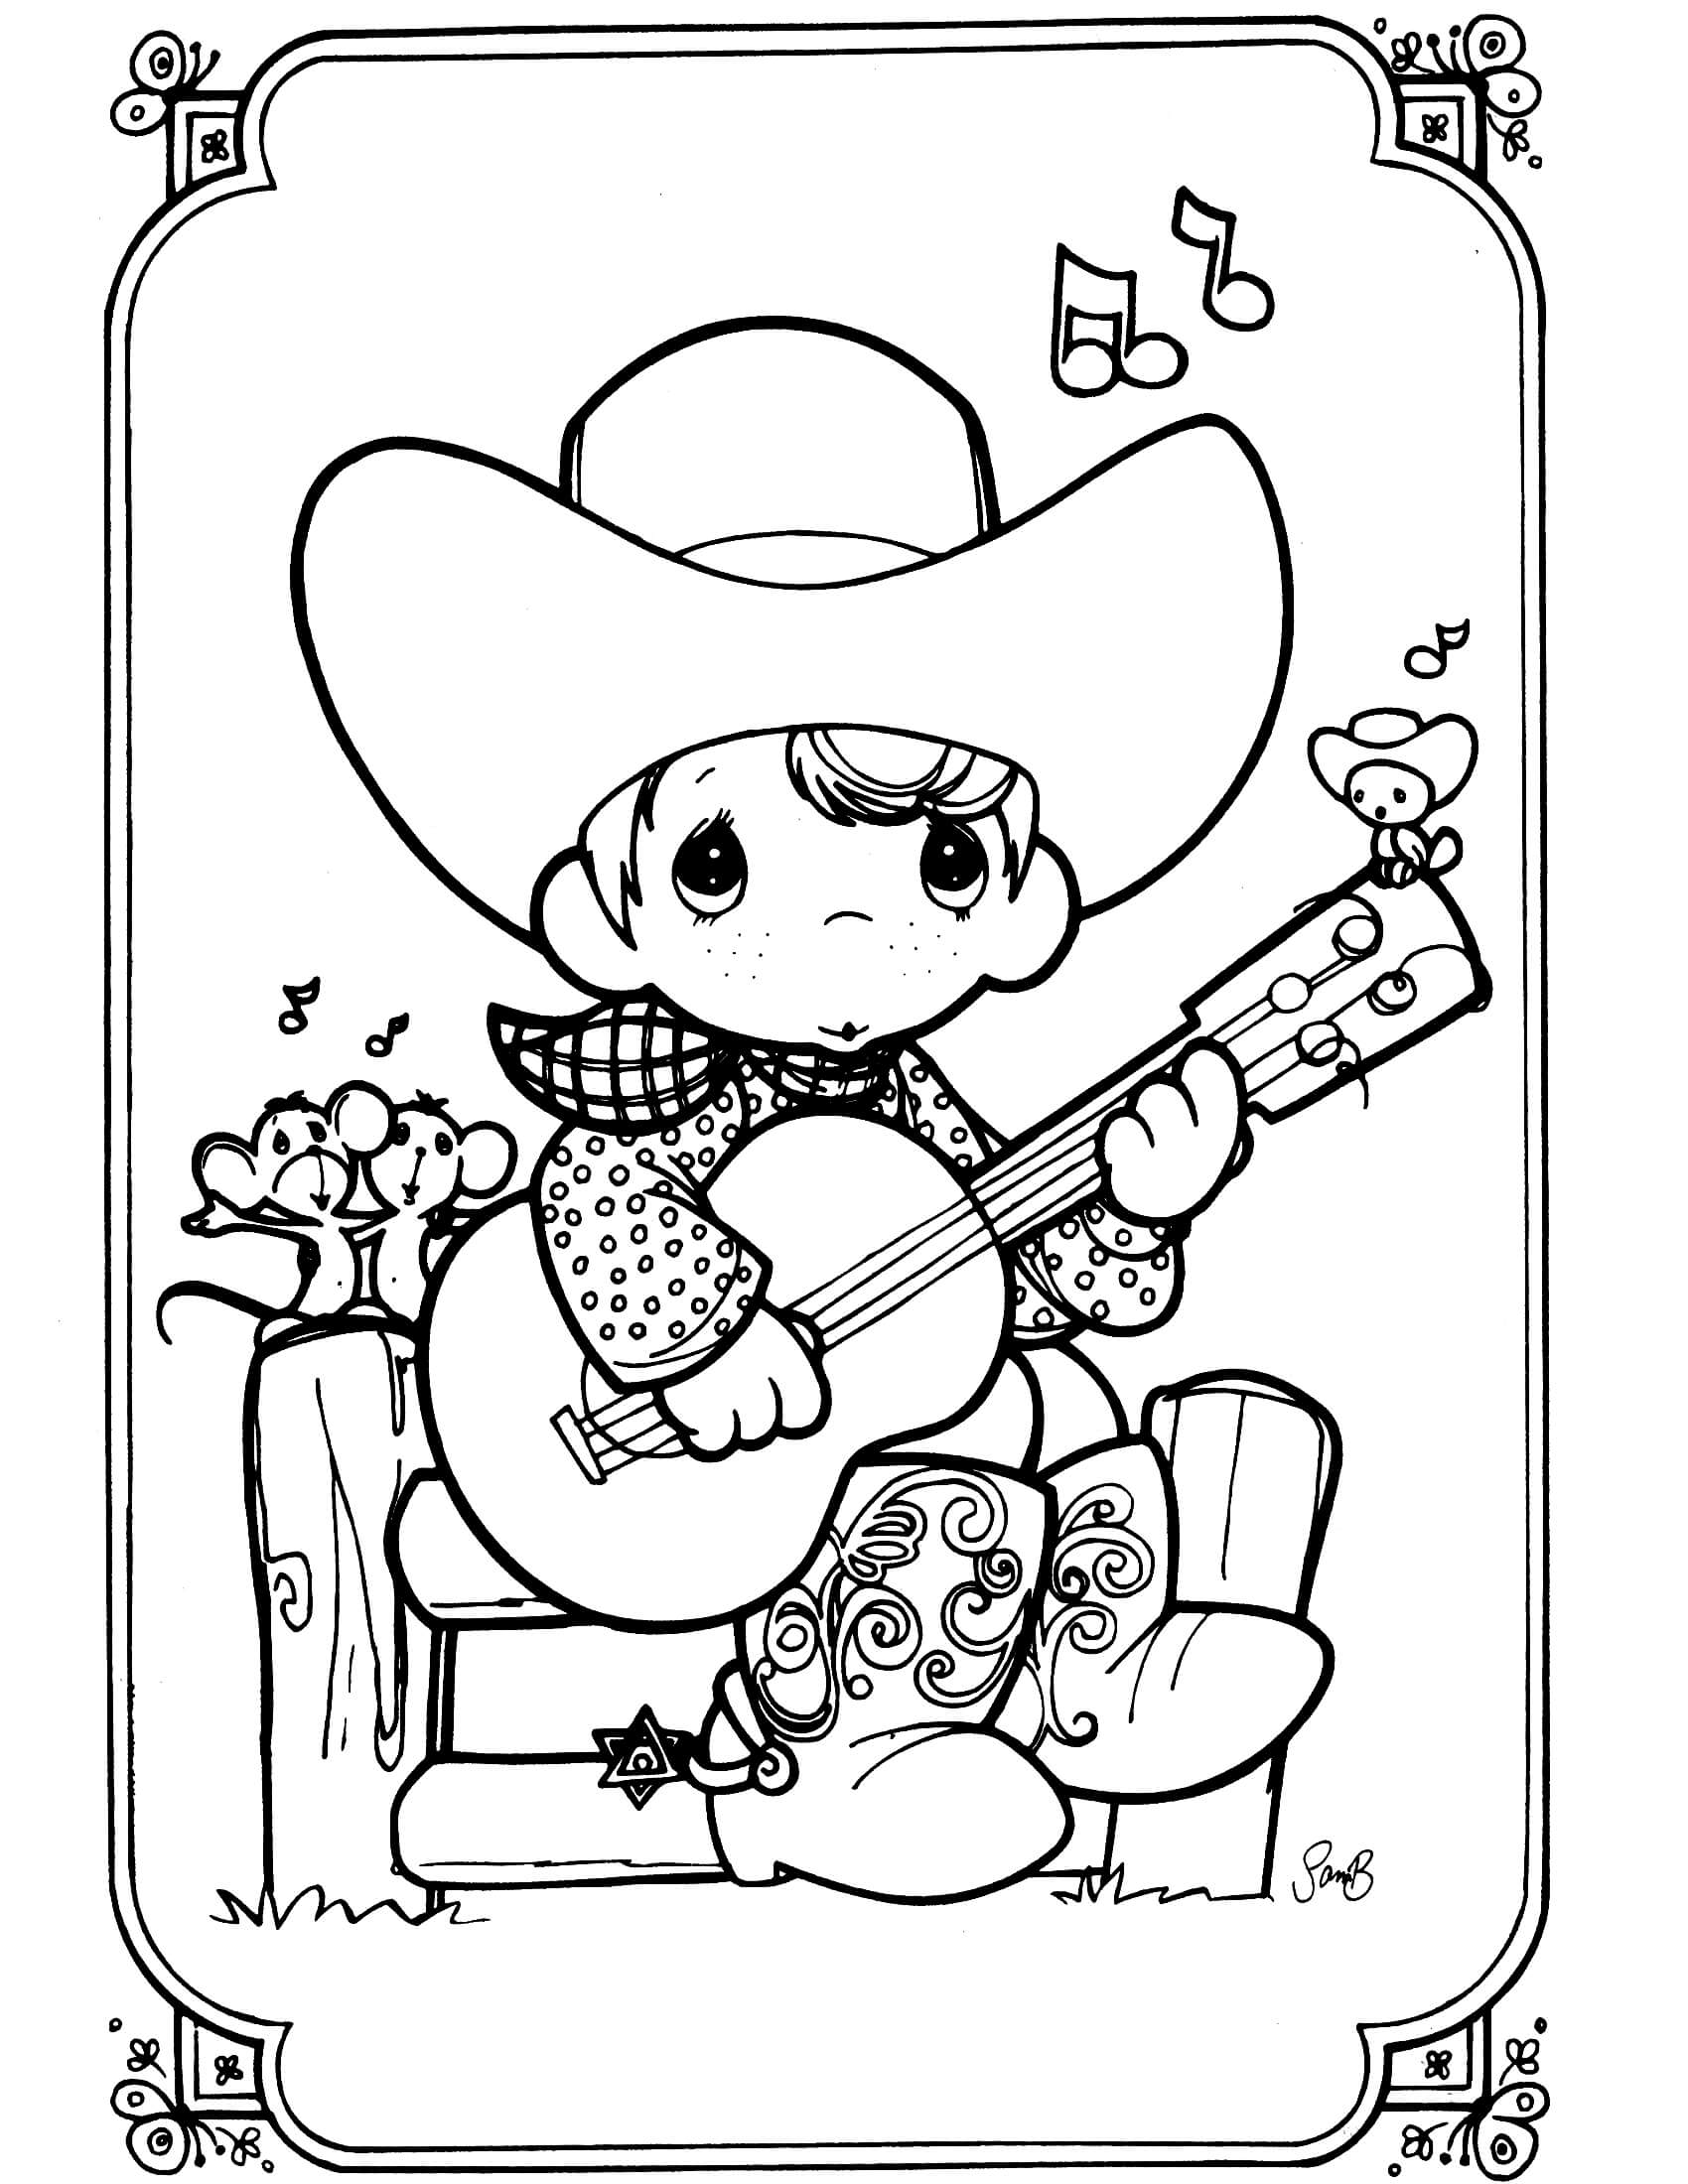 precious moments coloring pages printable precious moments vintage adult coloring pages printable coloring precious moments pages